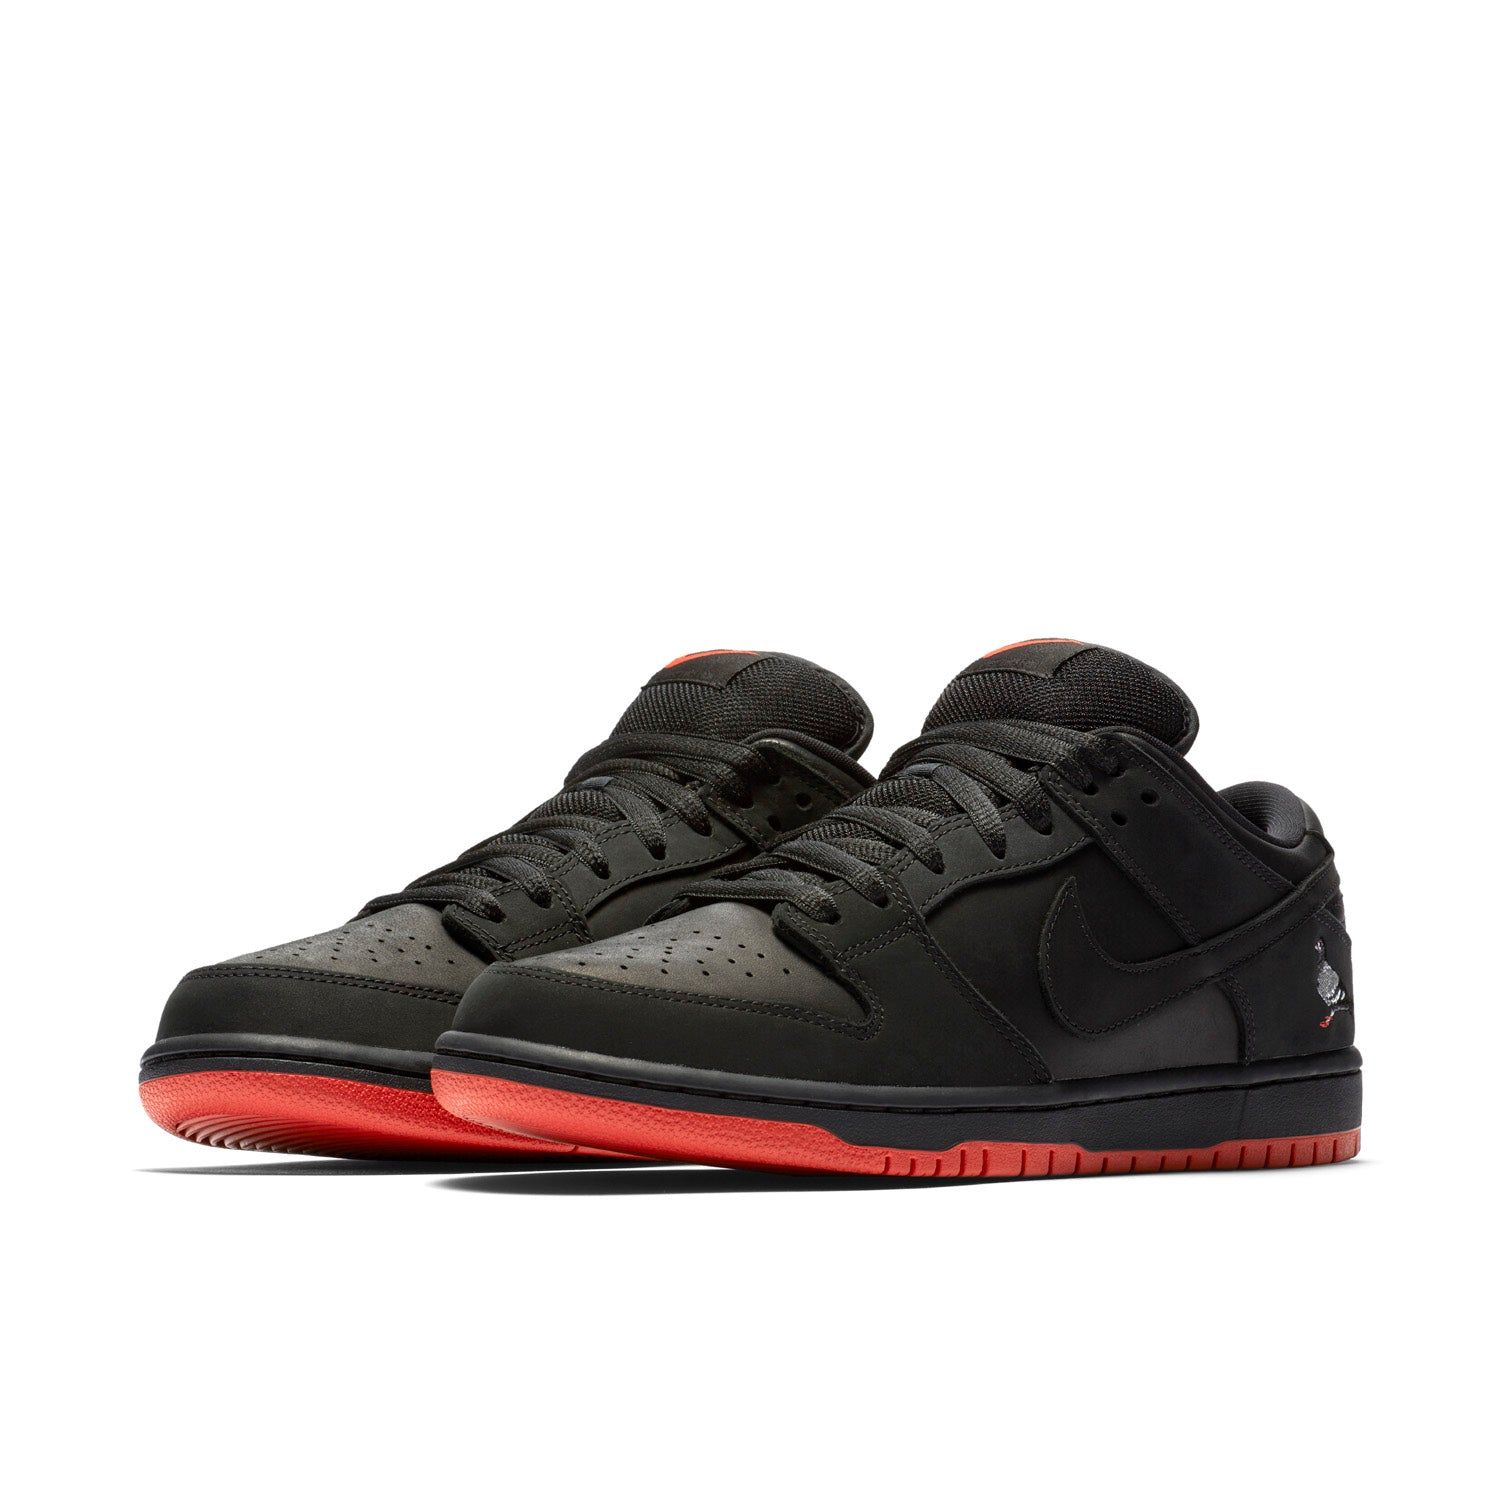 DUNK LOW STAPLES PIGEON BLACK / BLACK / SIENNA